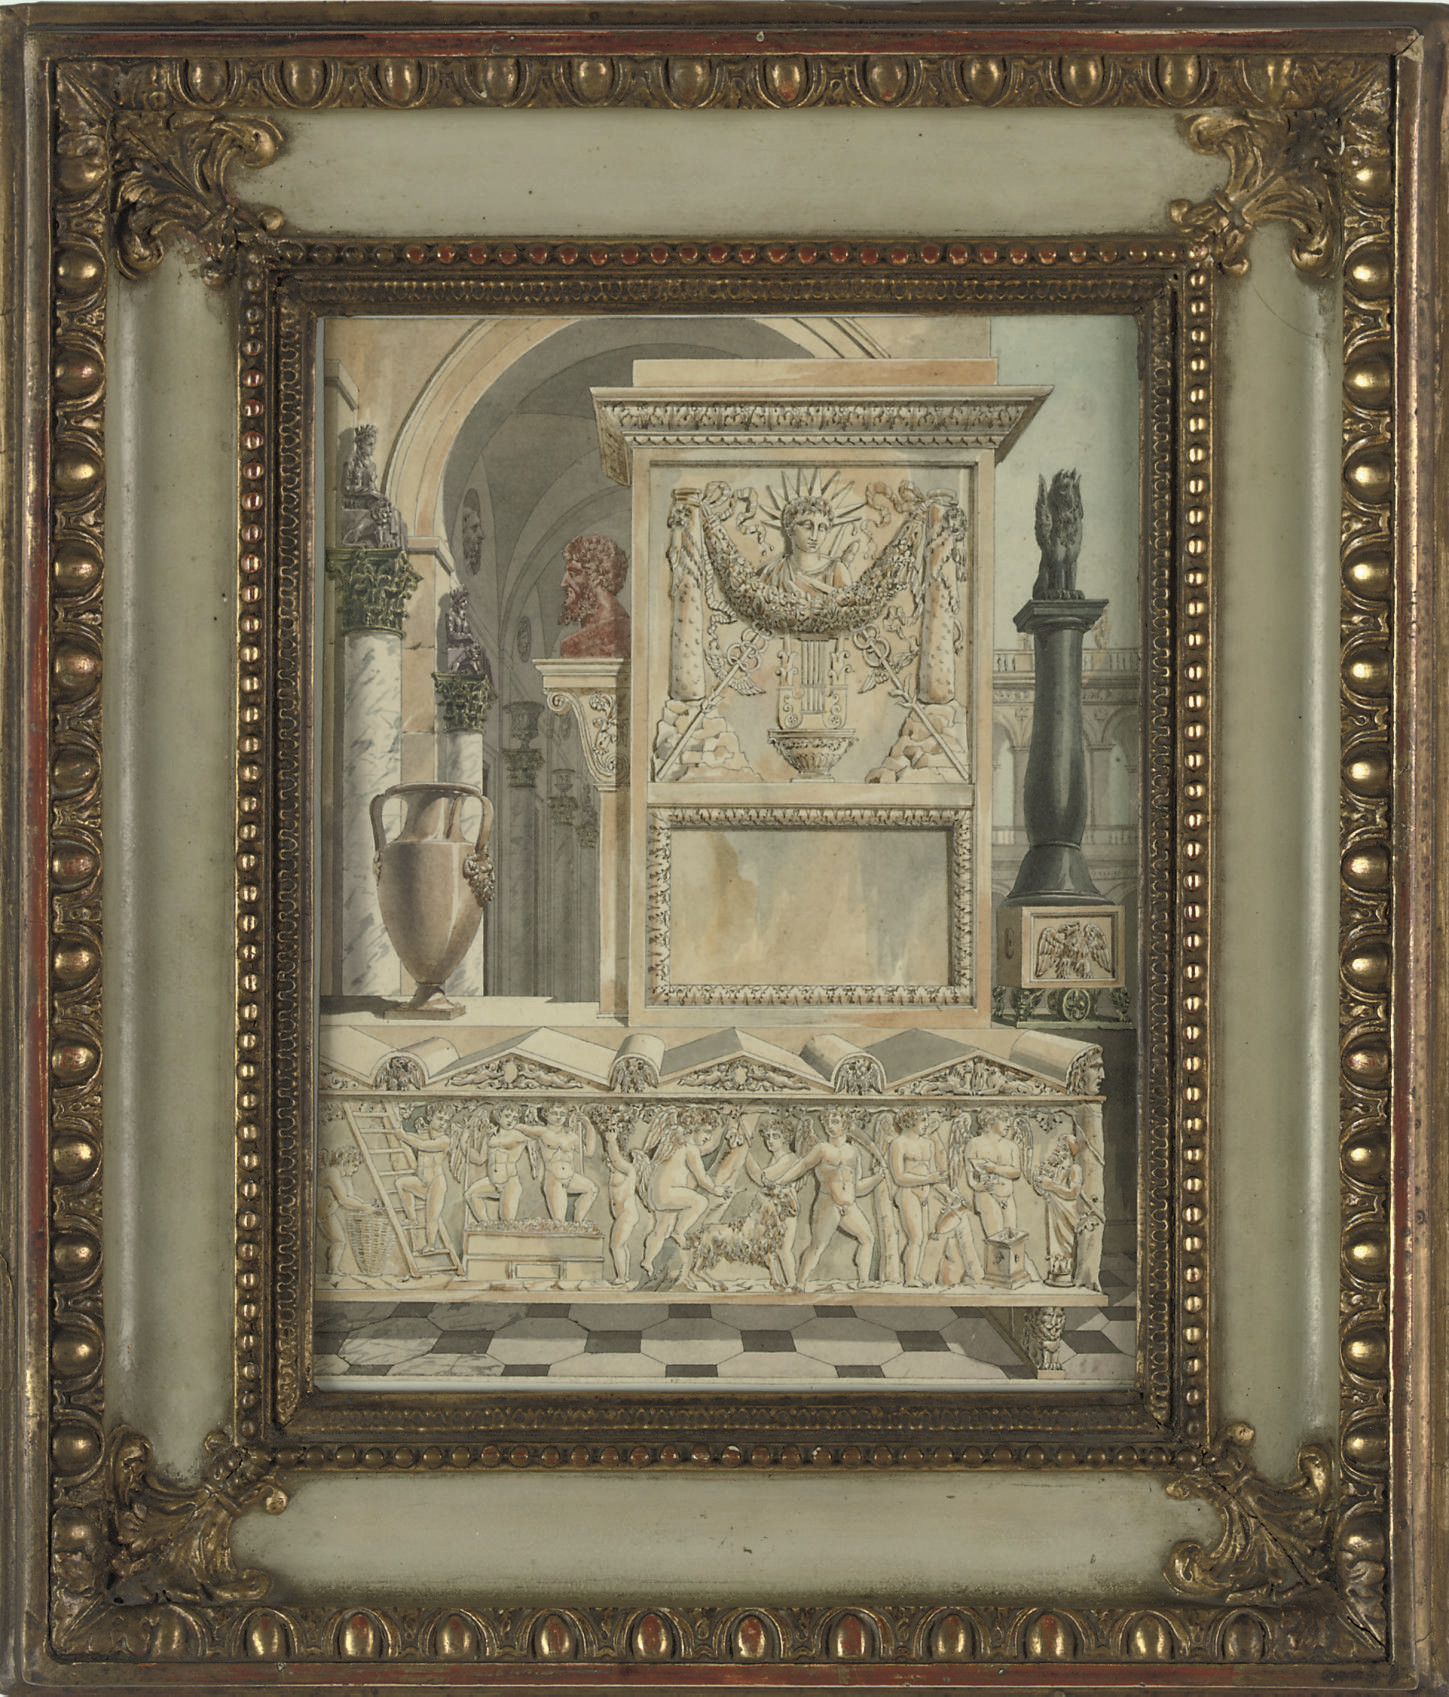 A classical capriccio with a sarcophagus in the foreground